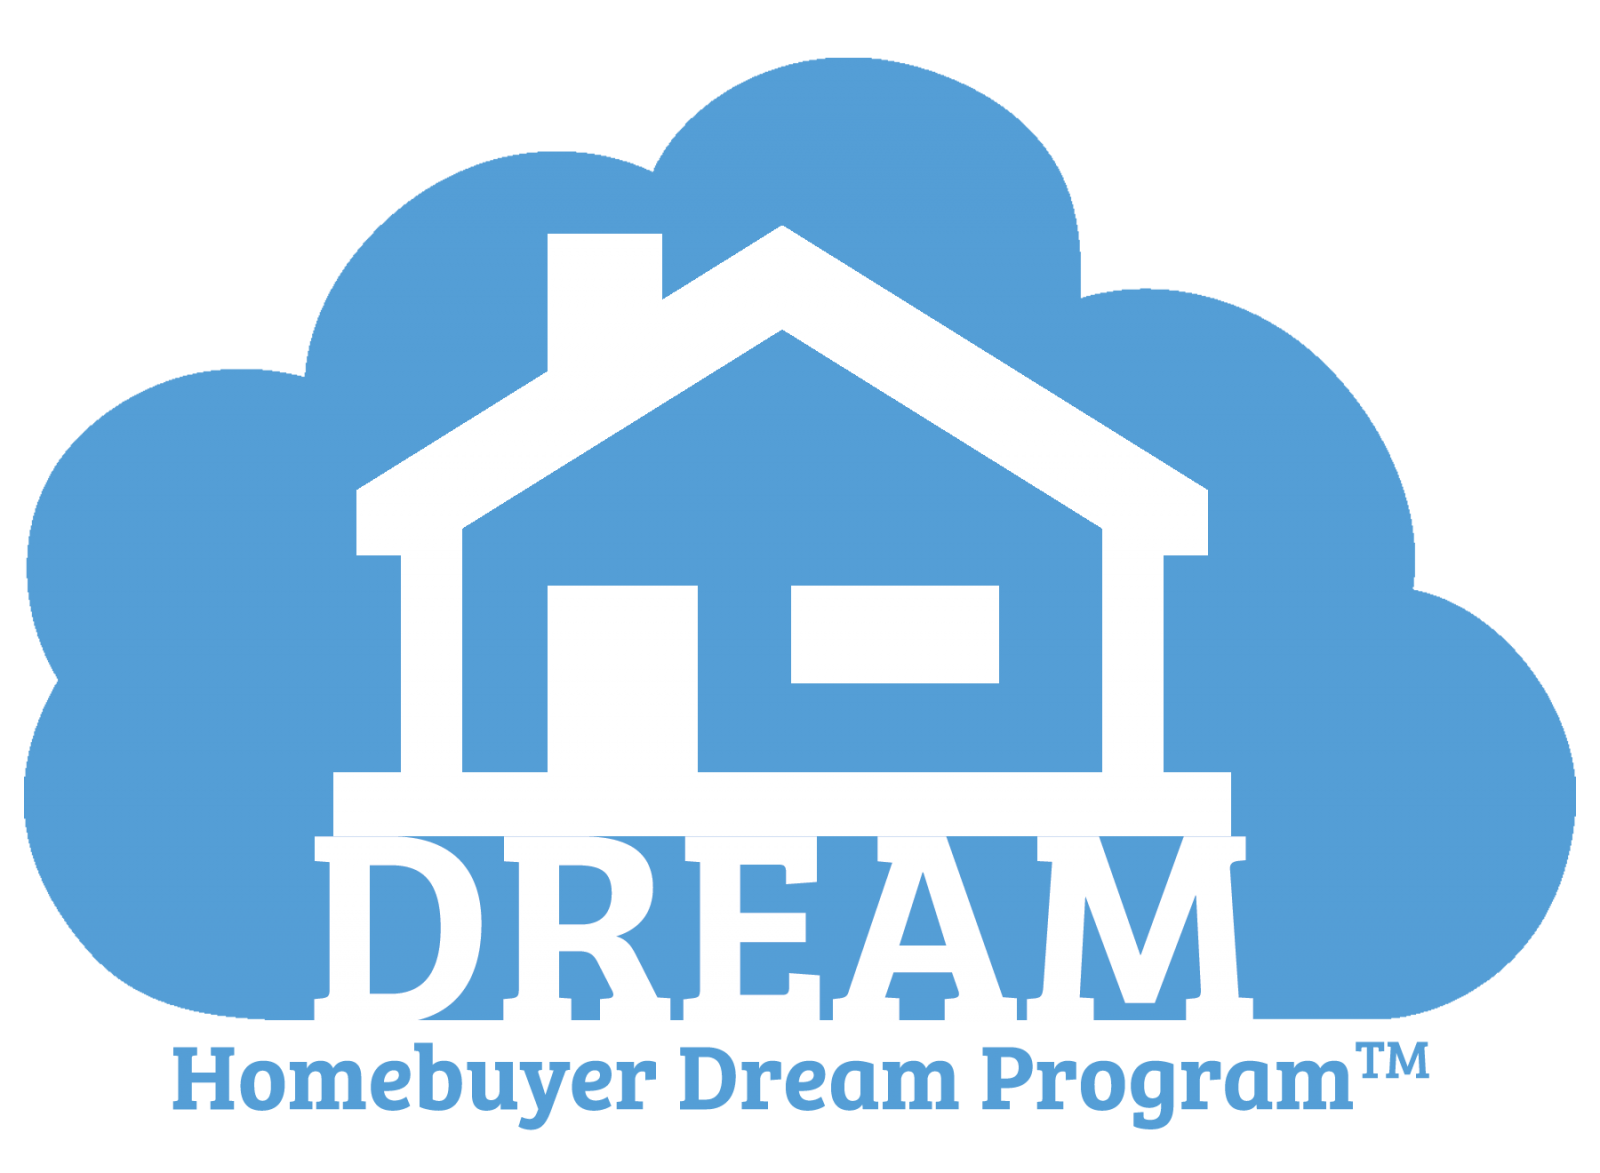 home buyer dream program logo